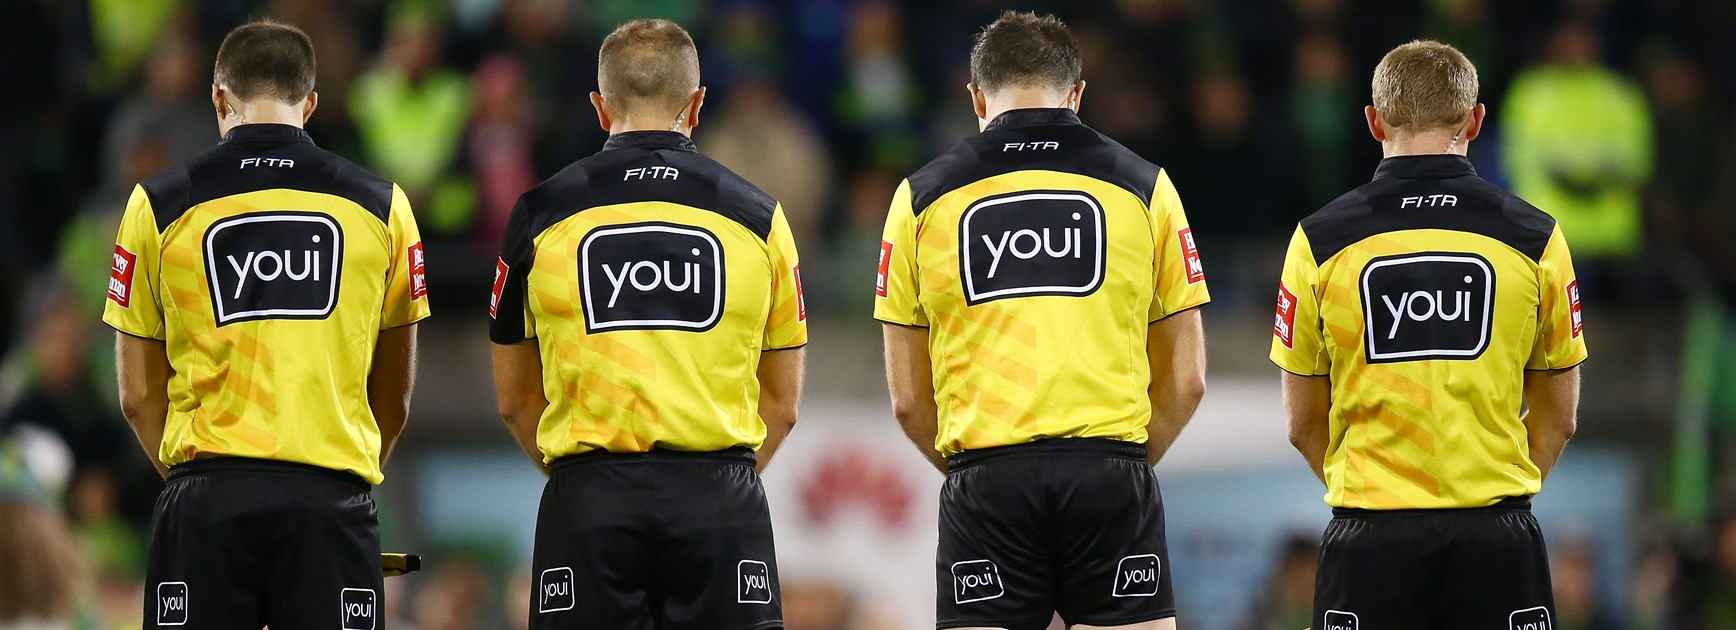 'It would hurt themselves': Players warn referees over industrial action